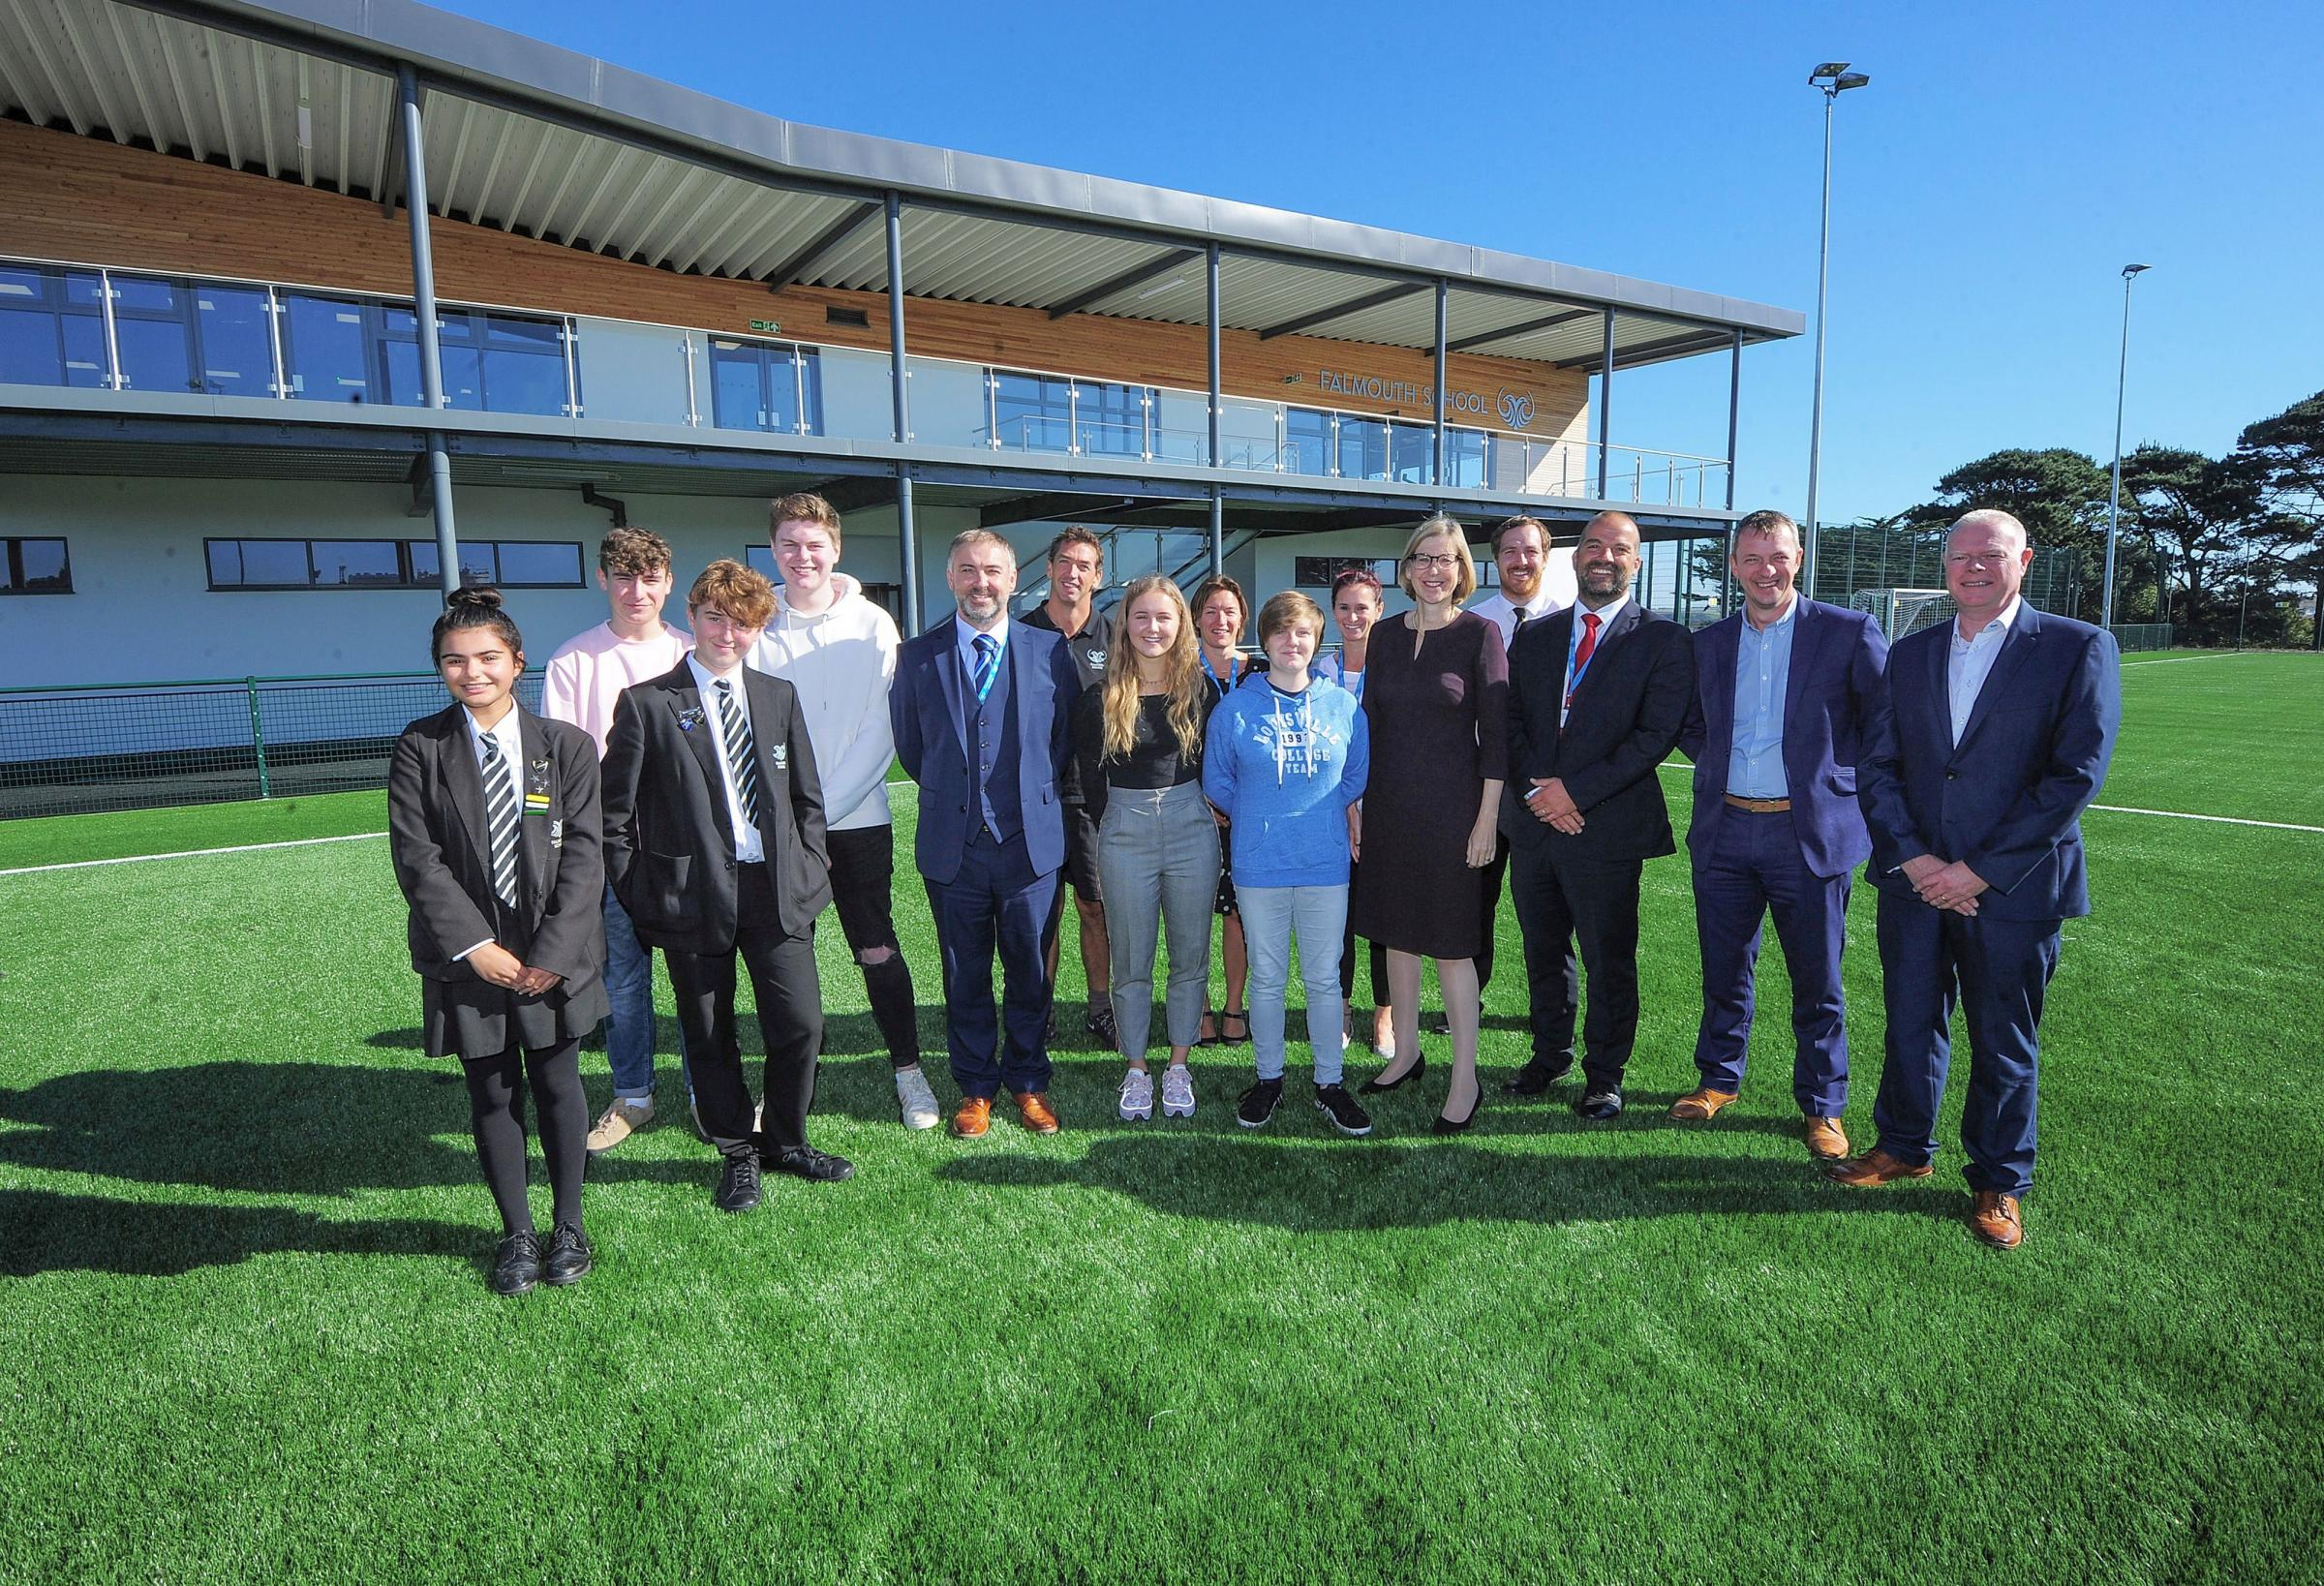 Students and teachers from Falmouth School with MP Sarah Newton at the opening of the sports hub last September